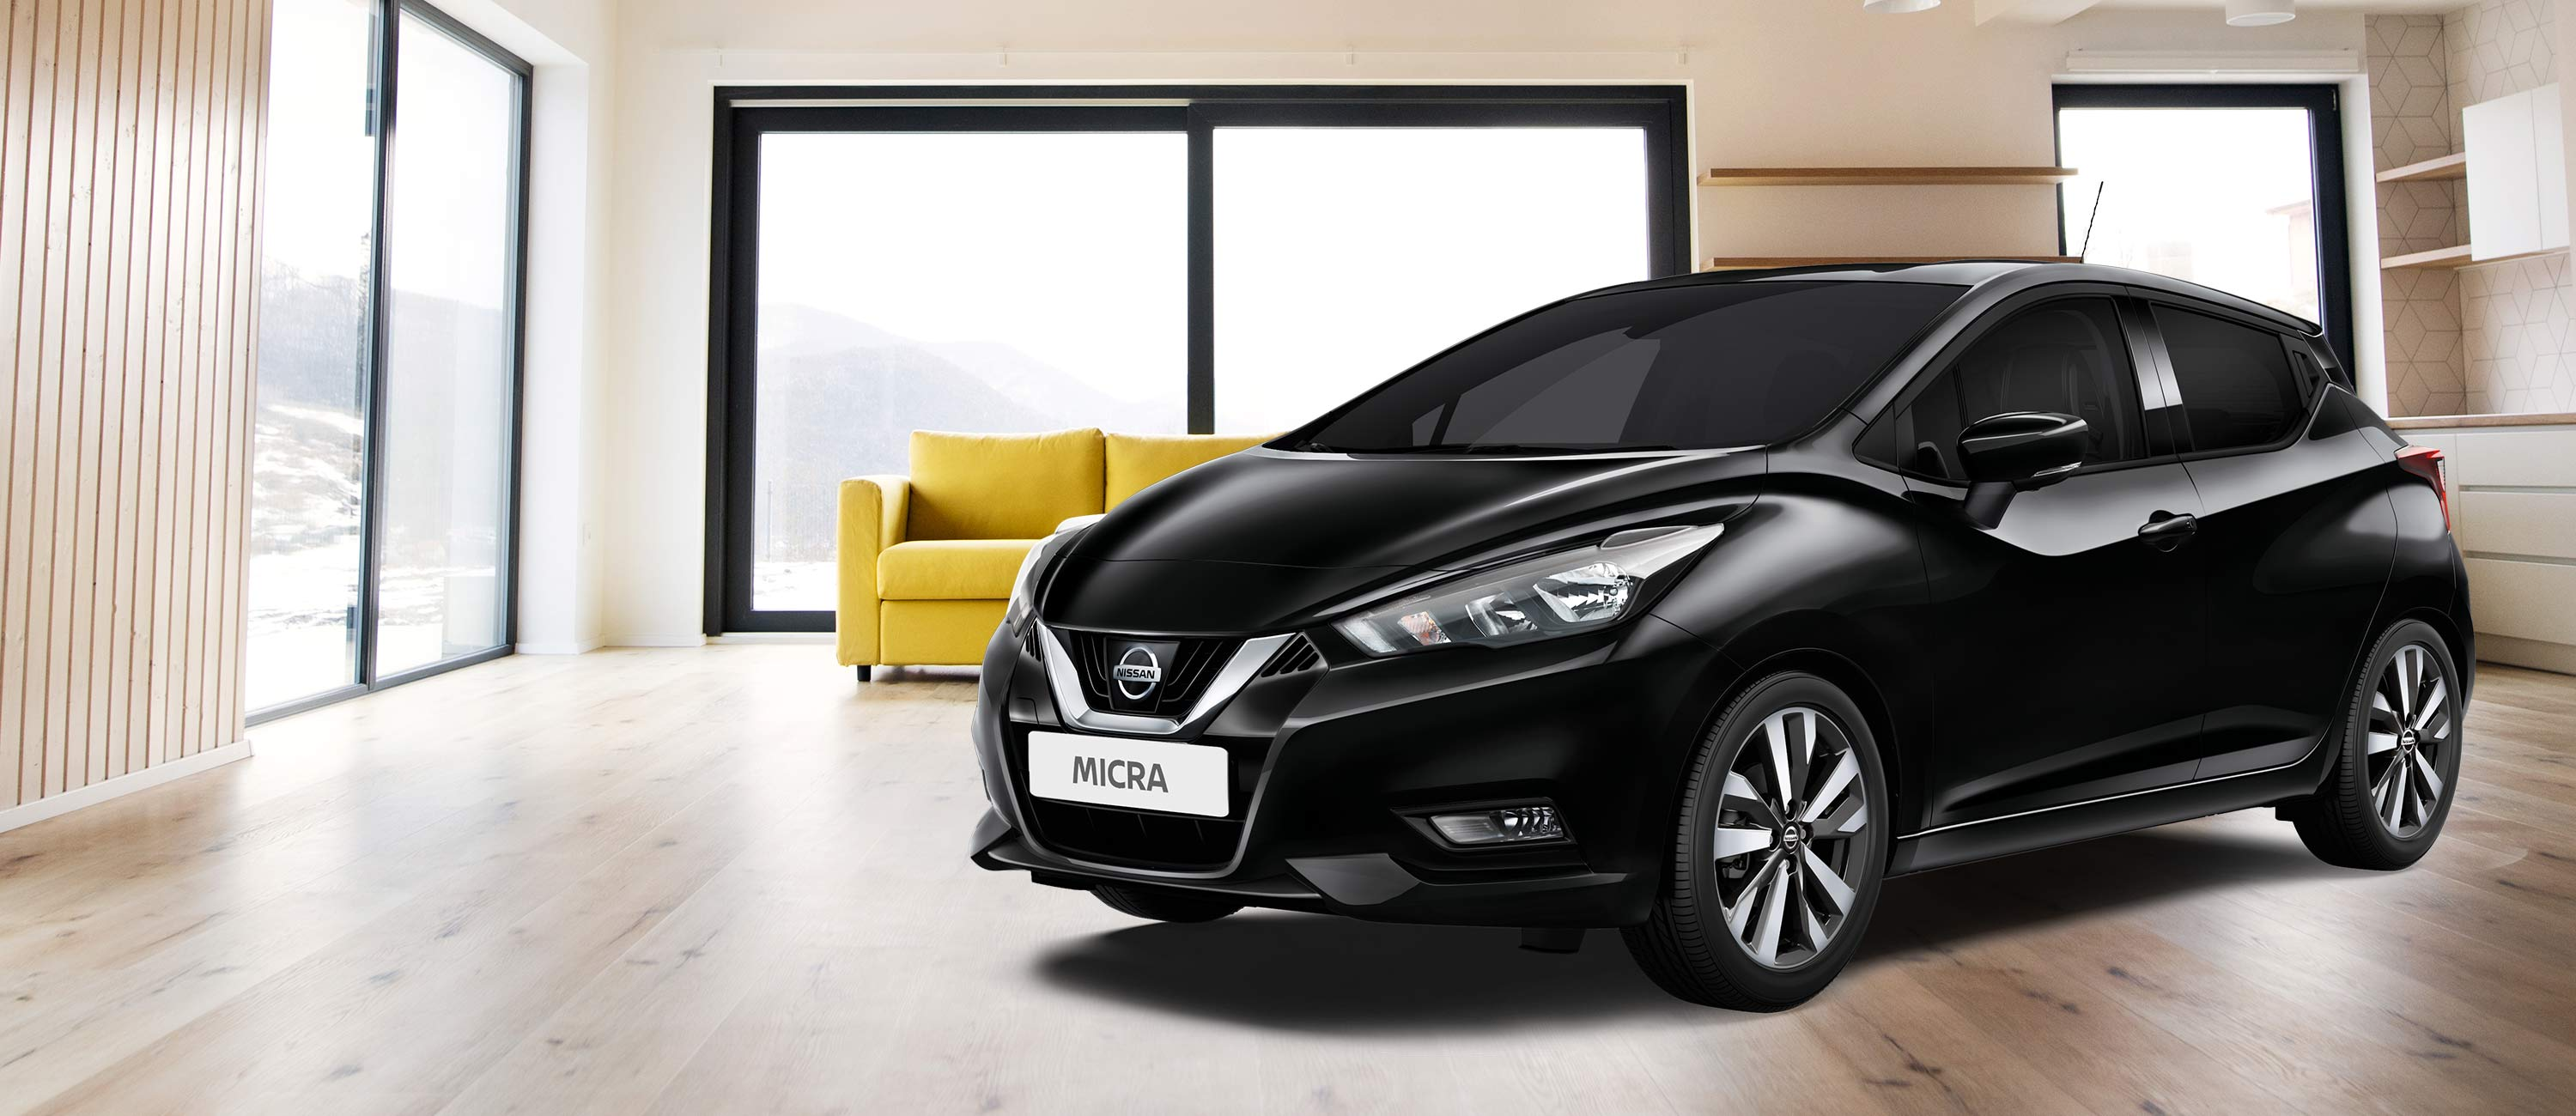 Nissan home test drive